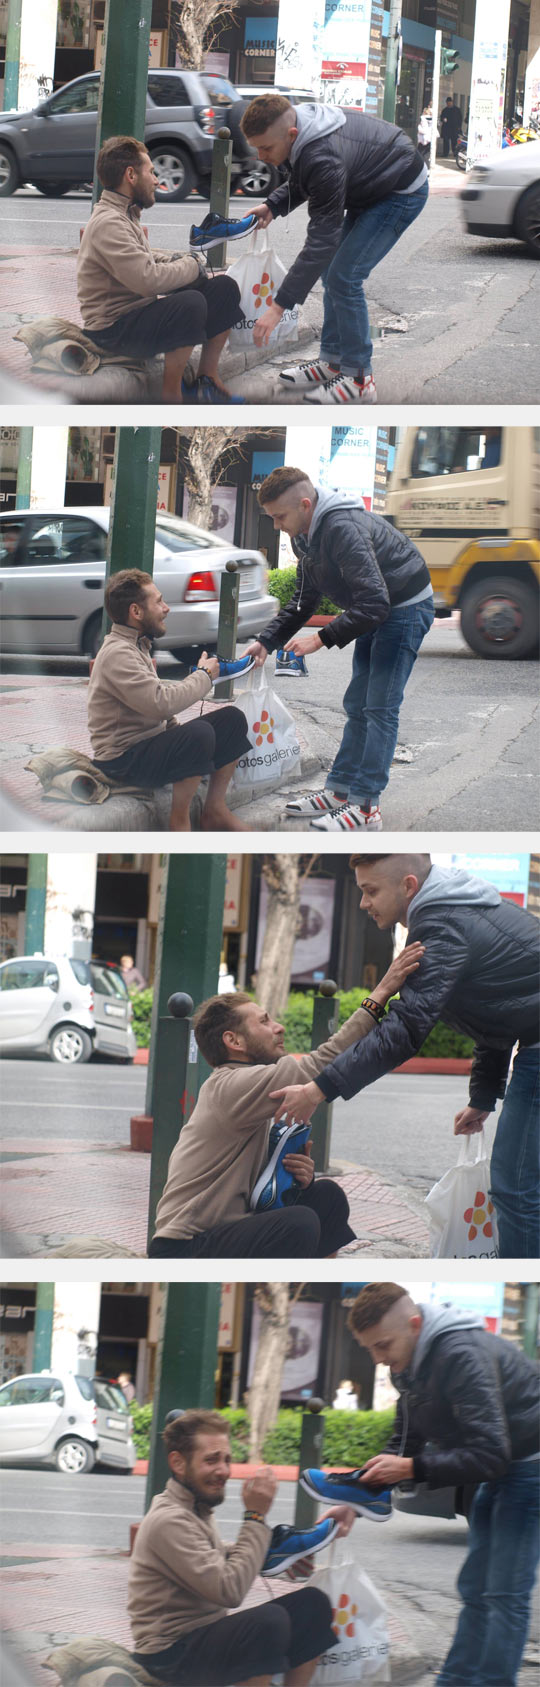 stranger-gift-homeless-shoes-street